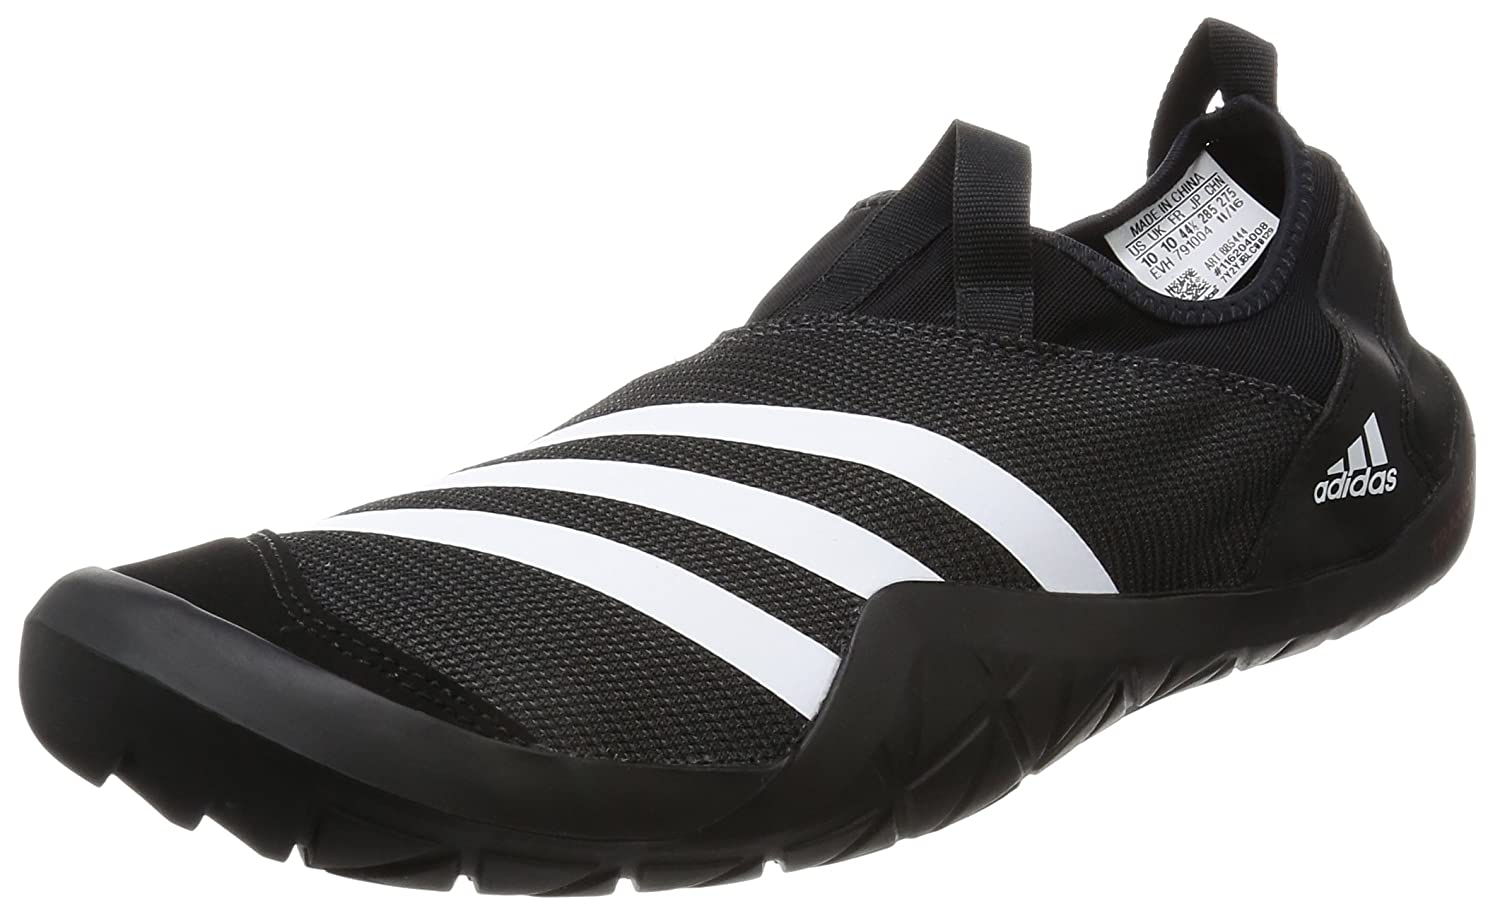 Adidas Climacool Jawpaw Sl, Zapatillas Impermeables Hombre